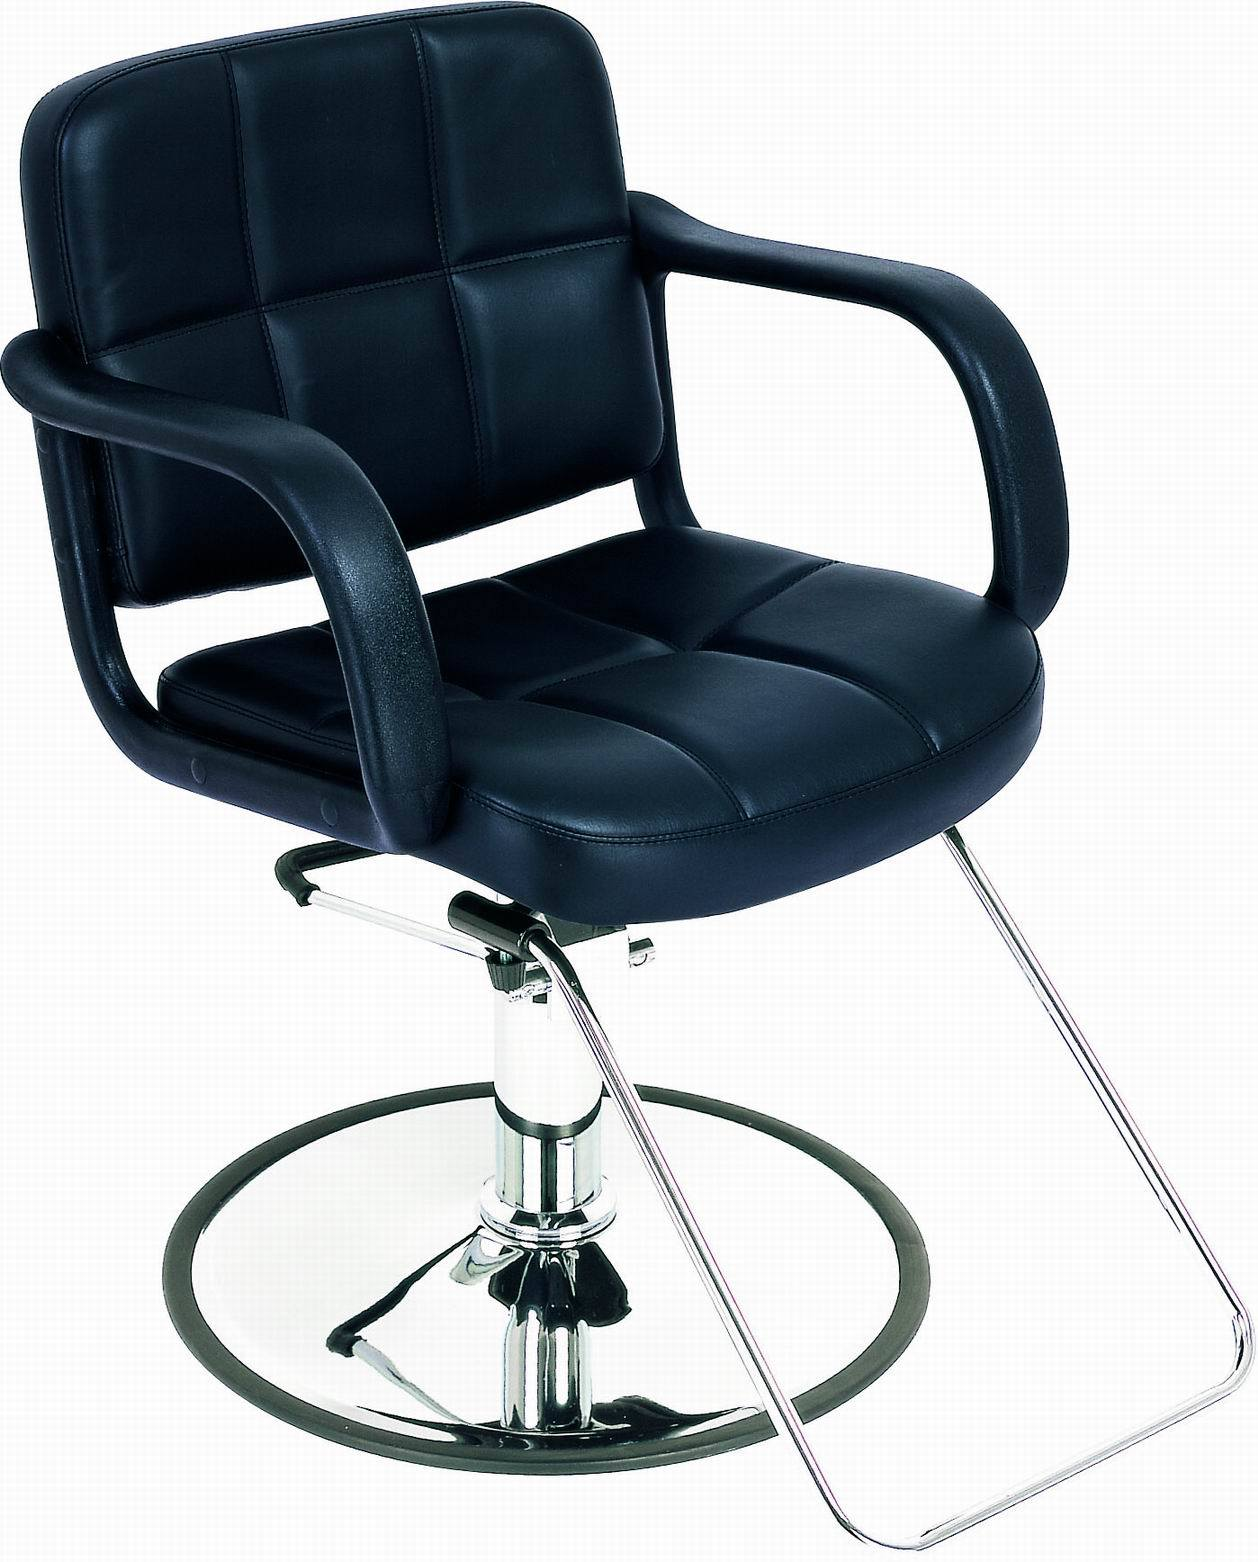 beauty salon chairs images lowe s canada plastic adirondack hair styling china